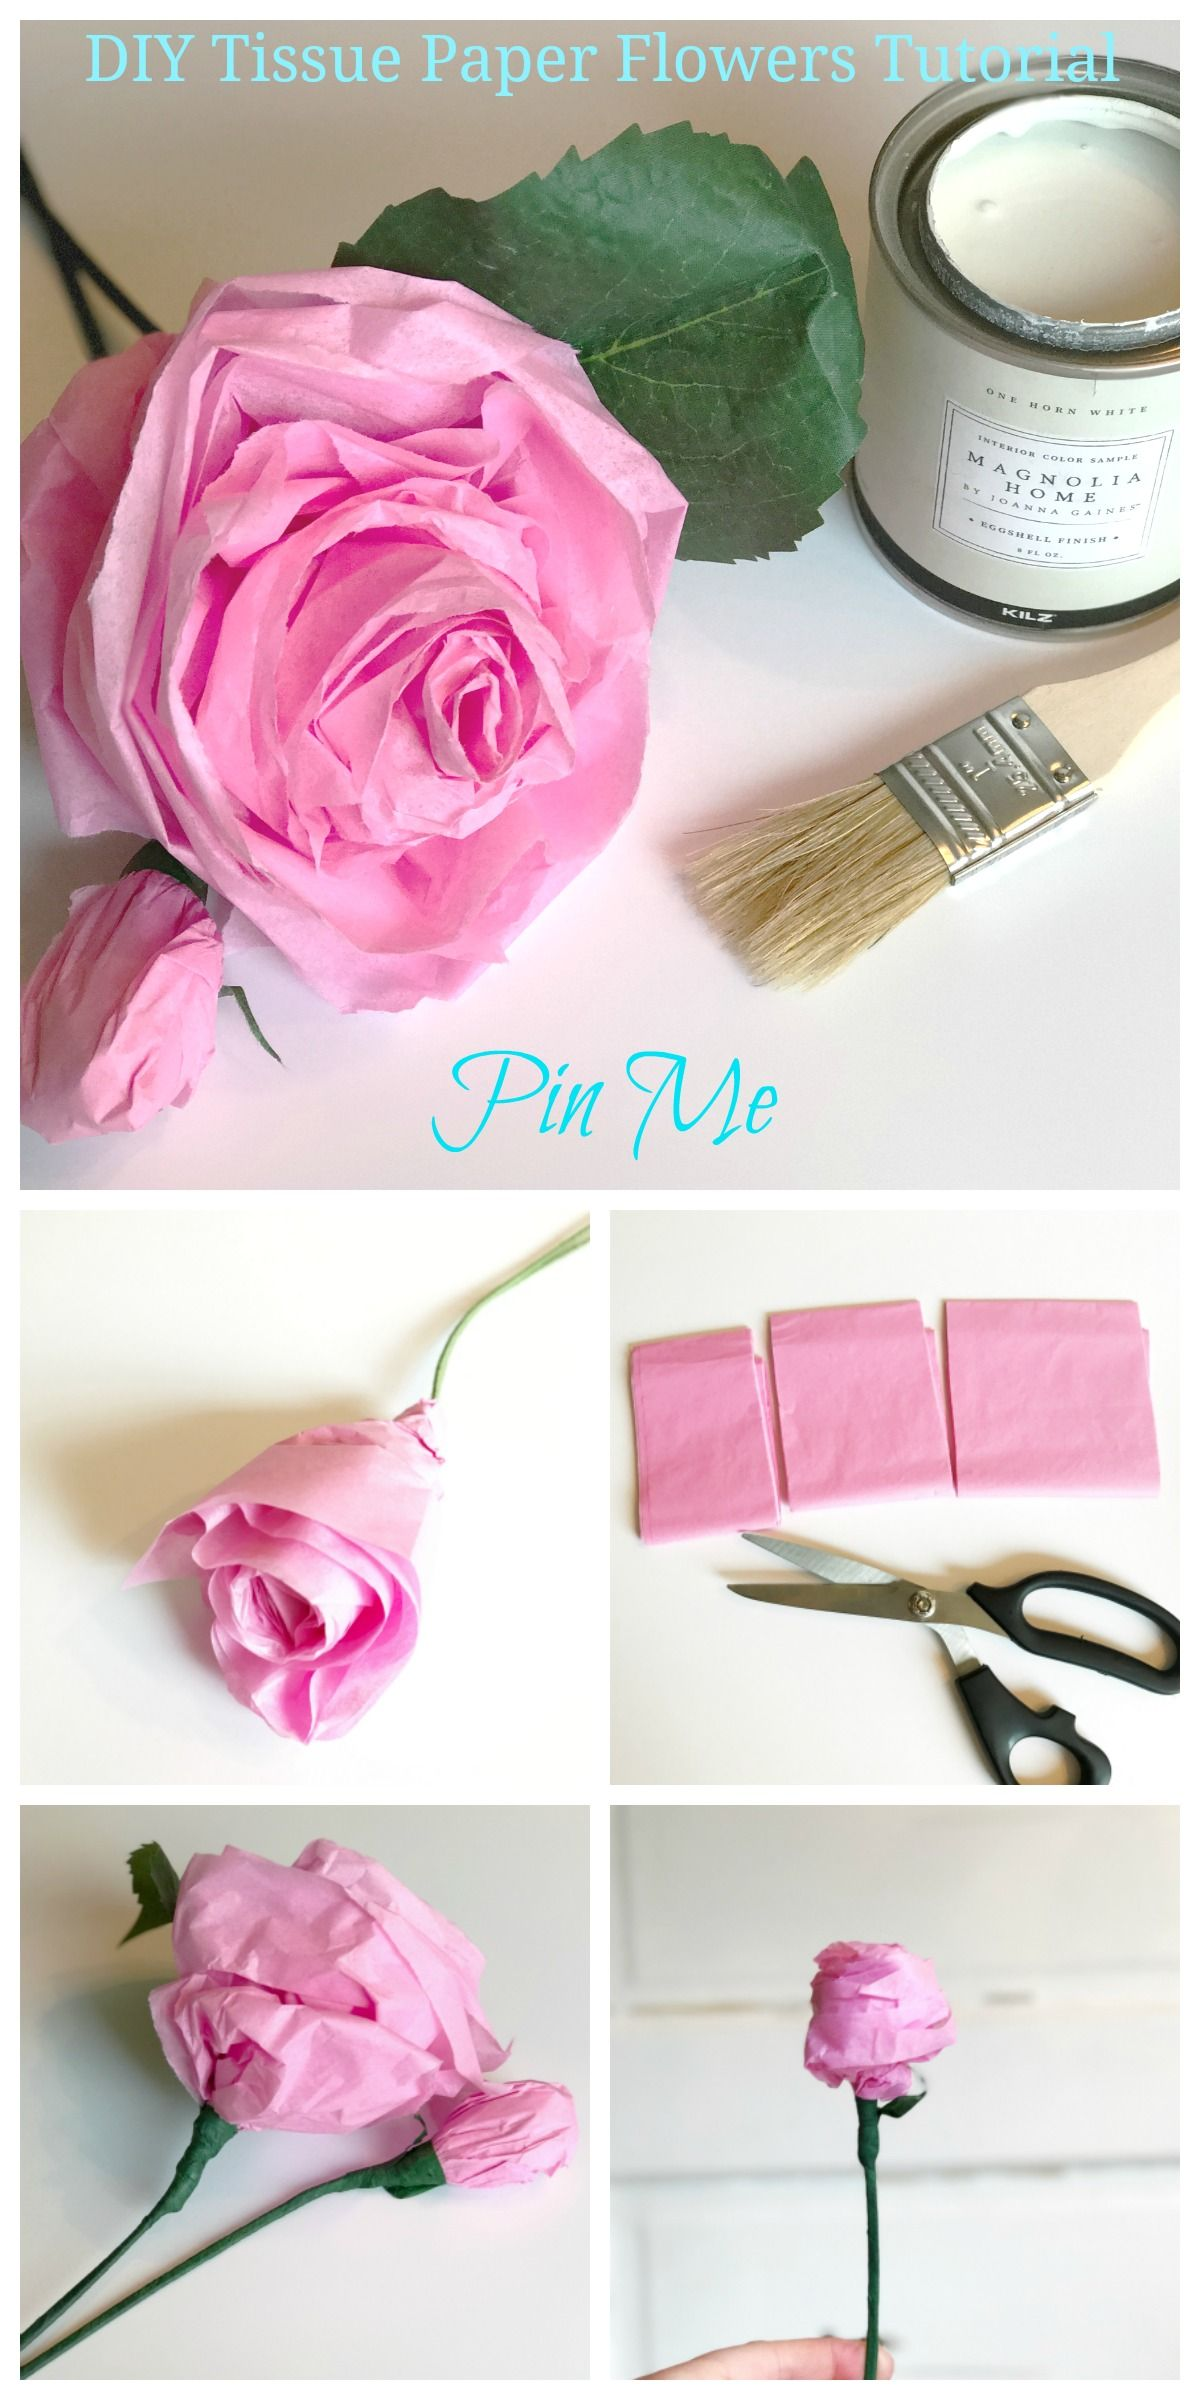 DIY Tissue Paper Flowers Tutorial | Tissue paper flowers, Tissue ...